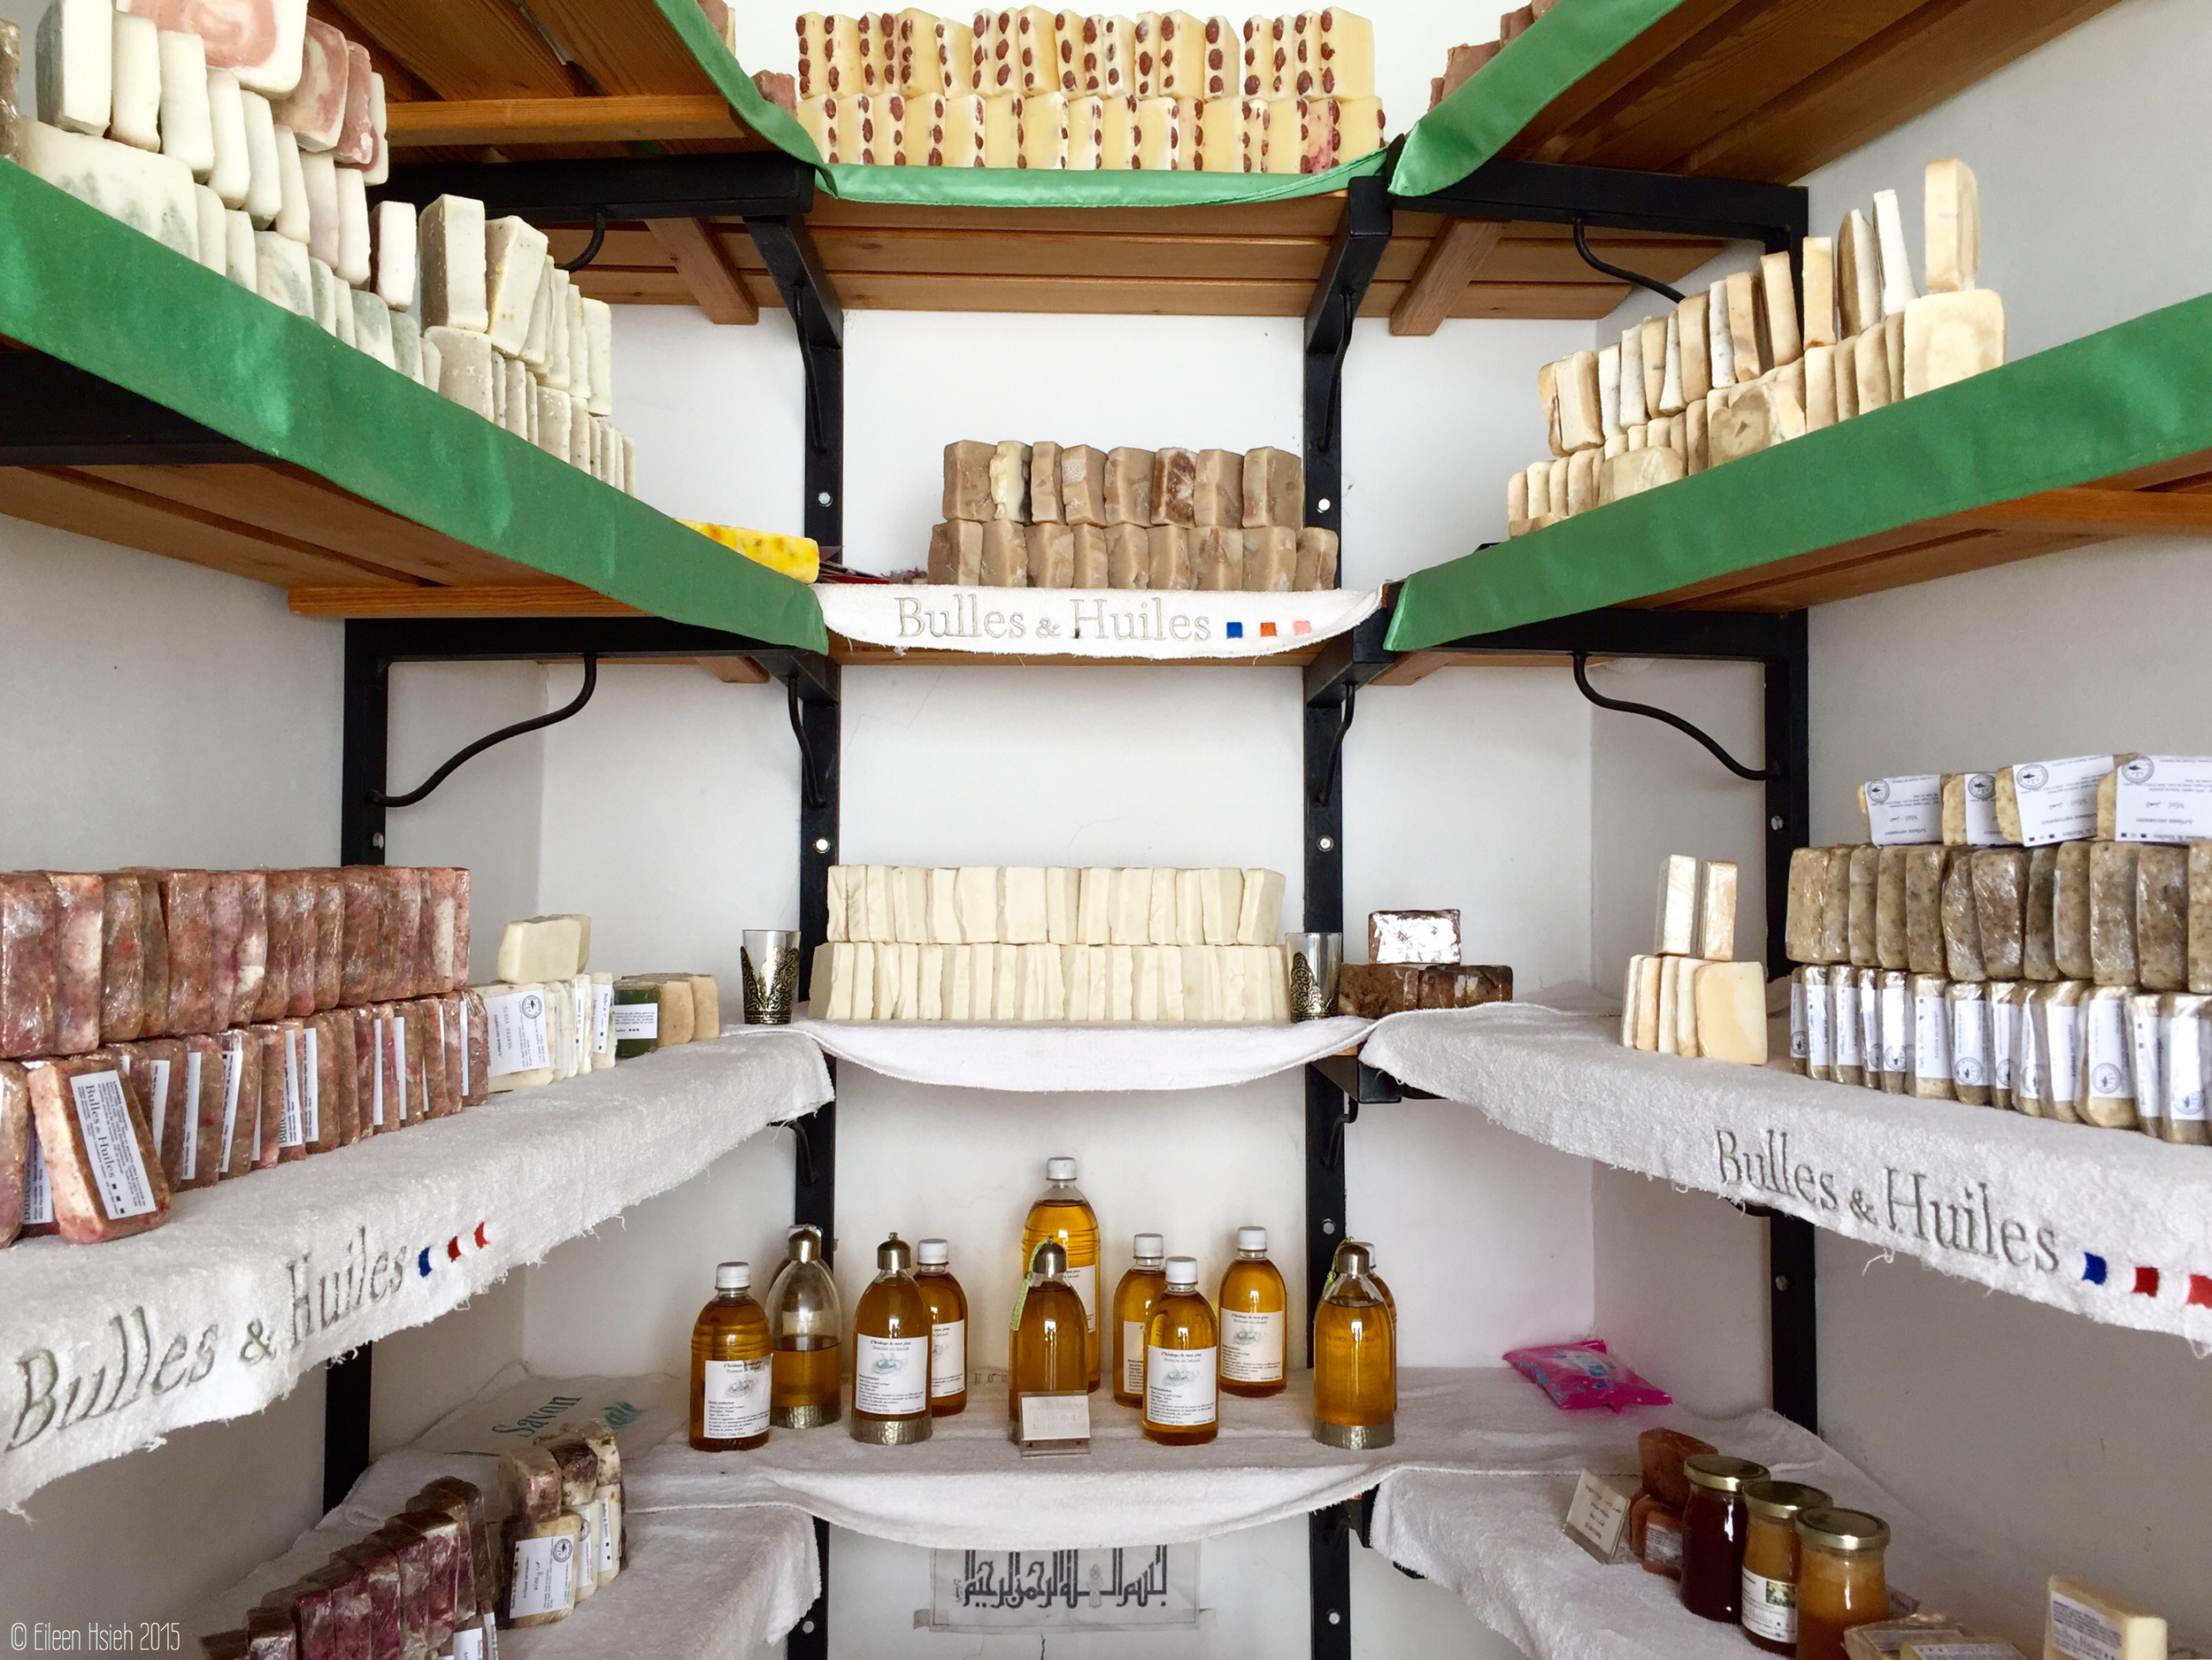 A variety of hand-made soaps and natural or infused argan oils can be found in the shop.小店裡賣有 多種類的 手工肥皂與堅果油。